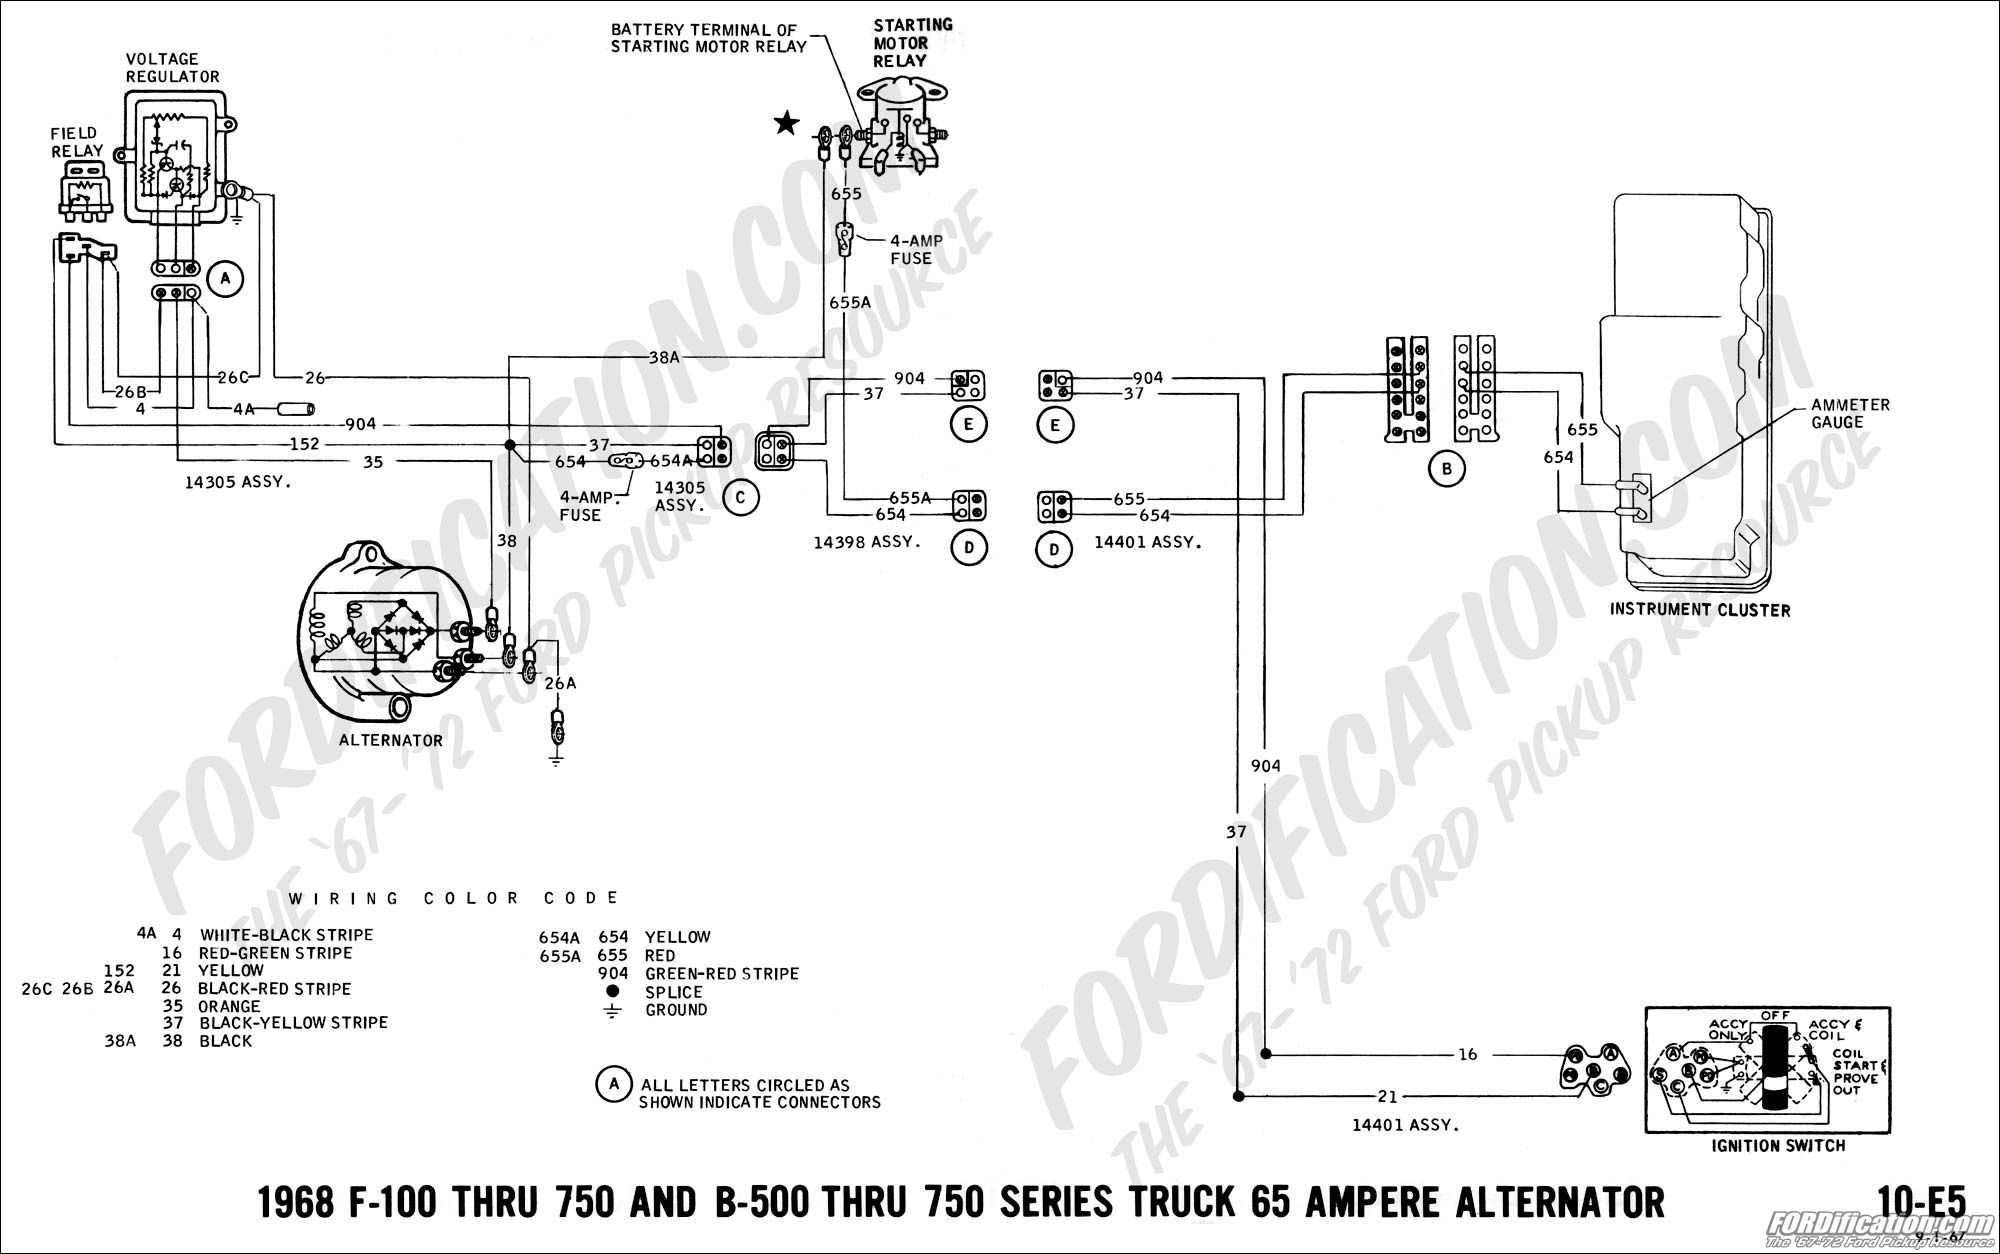 68 ford alternator wiring diagram 76 ford f150 pinterest ford rh pinterest com 1968 ford bronco wiring diagram 1968 ford torino wiring diagram